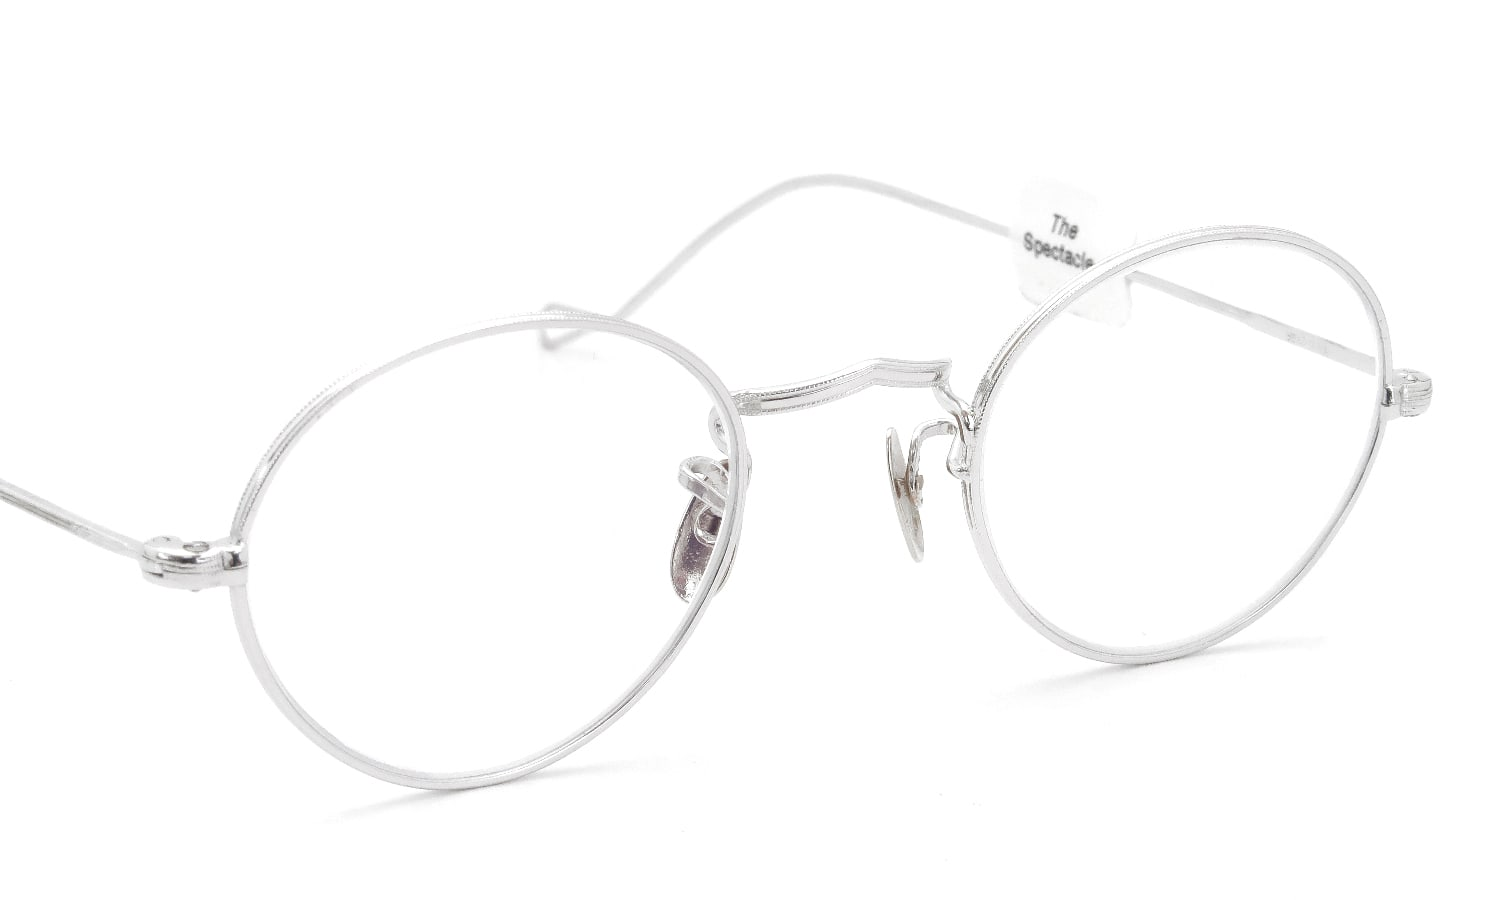 American Optical 1928〜1930s SQUIRE-FRAME P-6 Side-Mount WG 12kPads 43-24